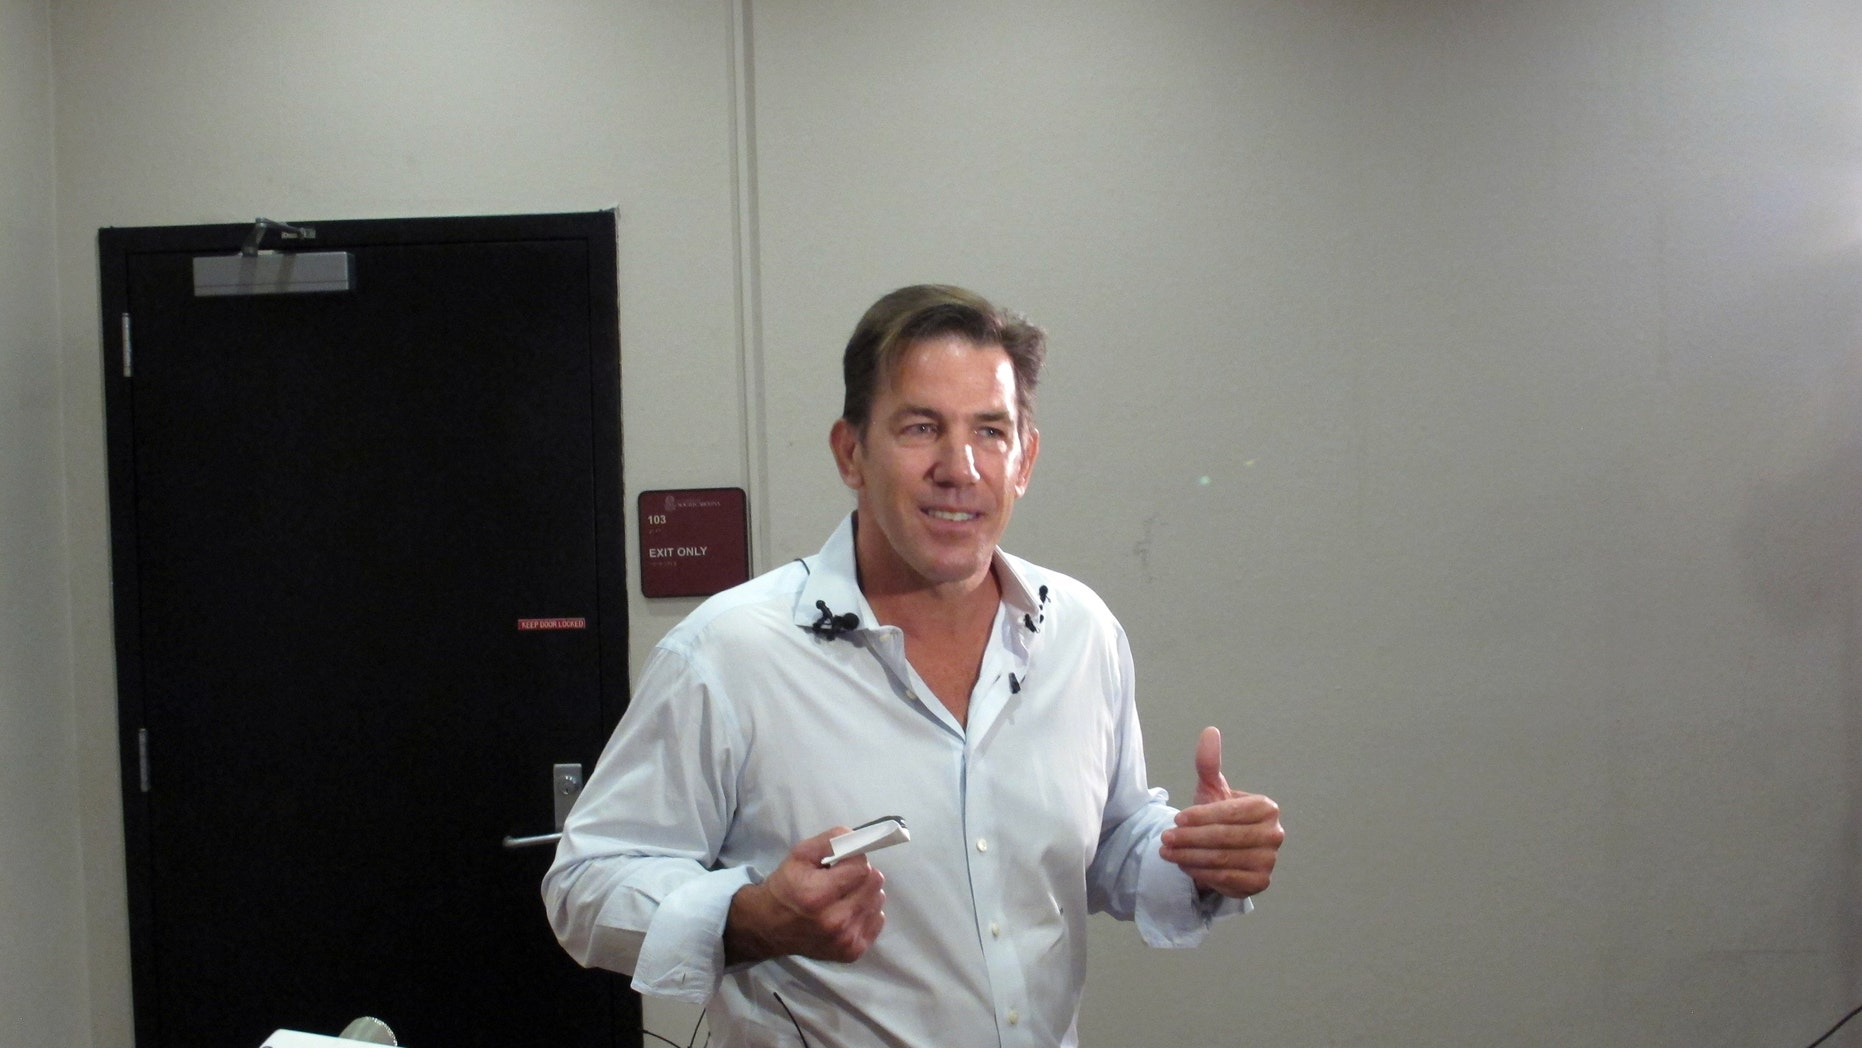 July 14, 2014: Former South Carolina Treasurer Thomas Ravenel talks to reporters after applying to run as an independent candidate for the U.S. Senate seat held by Lindsey Graham at the state Election Commission headquarters.